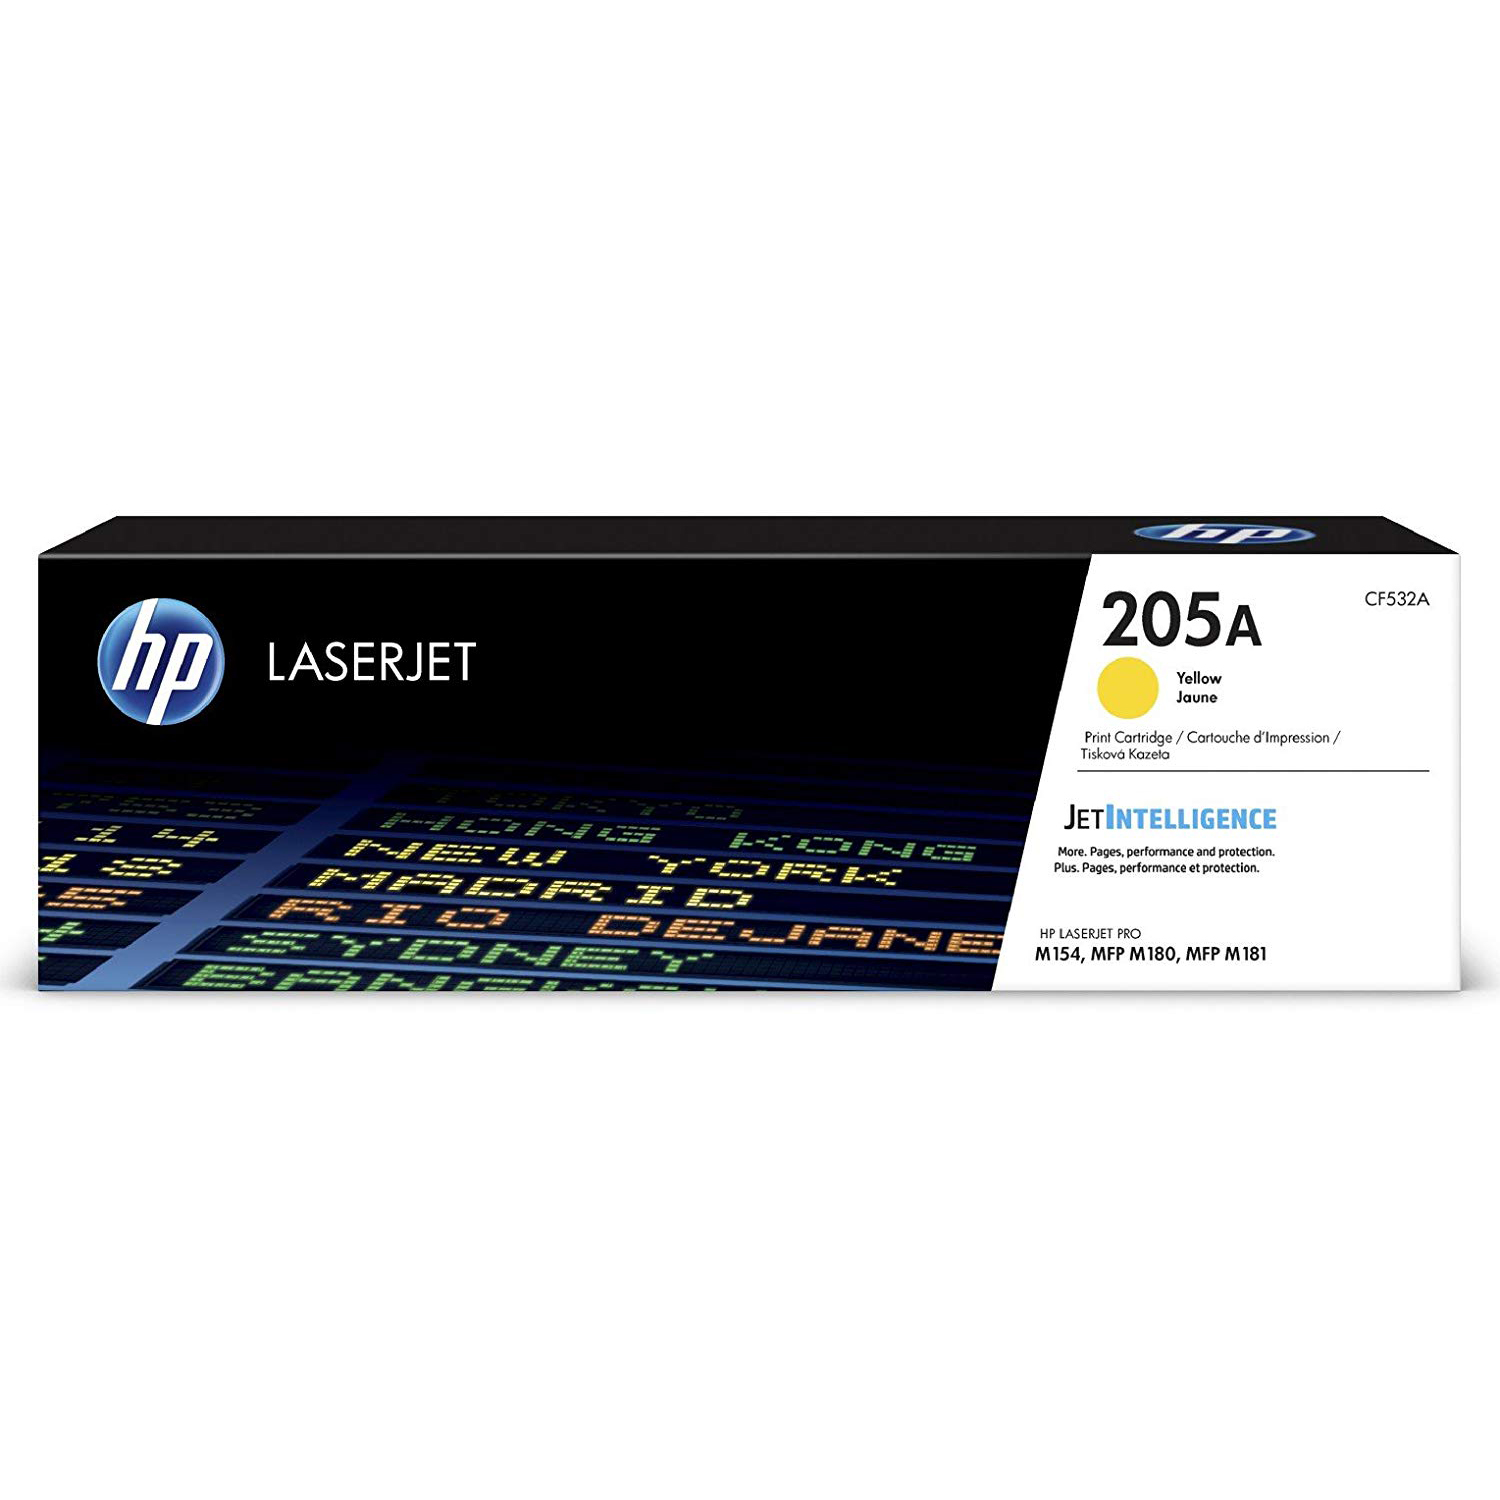 HP 205A (CF532A) Toner Cartridge - Yellow